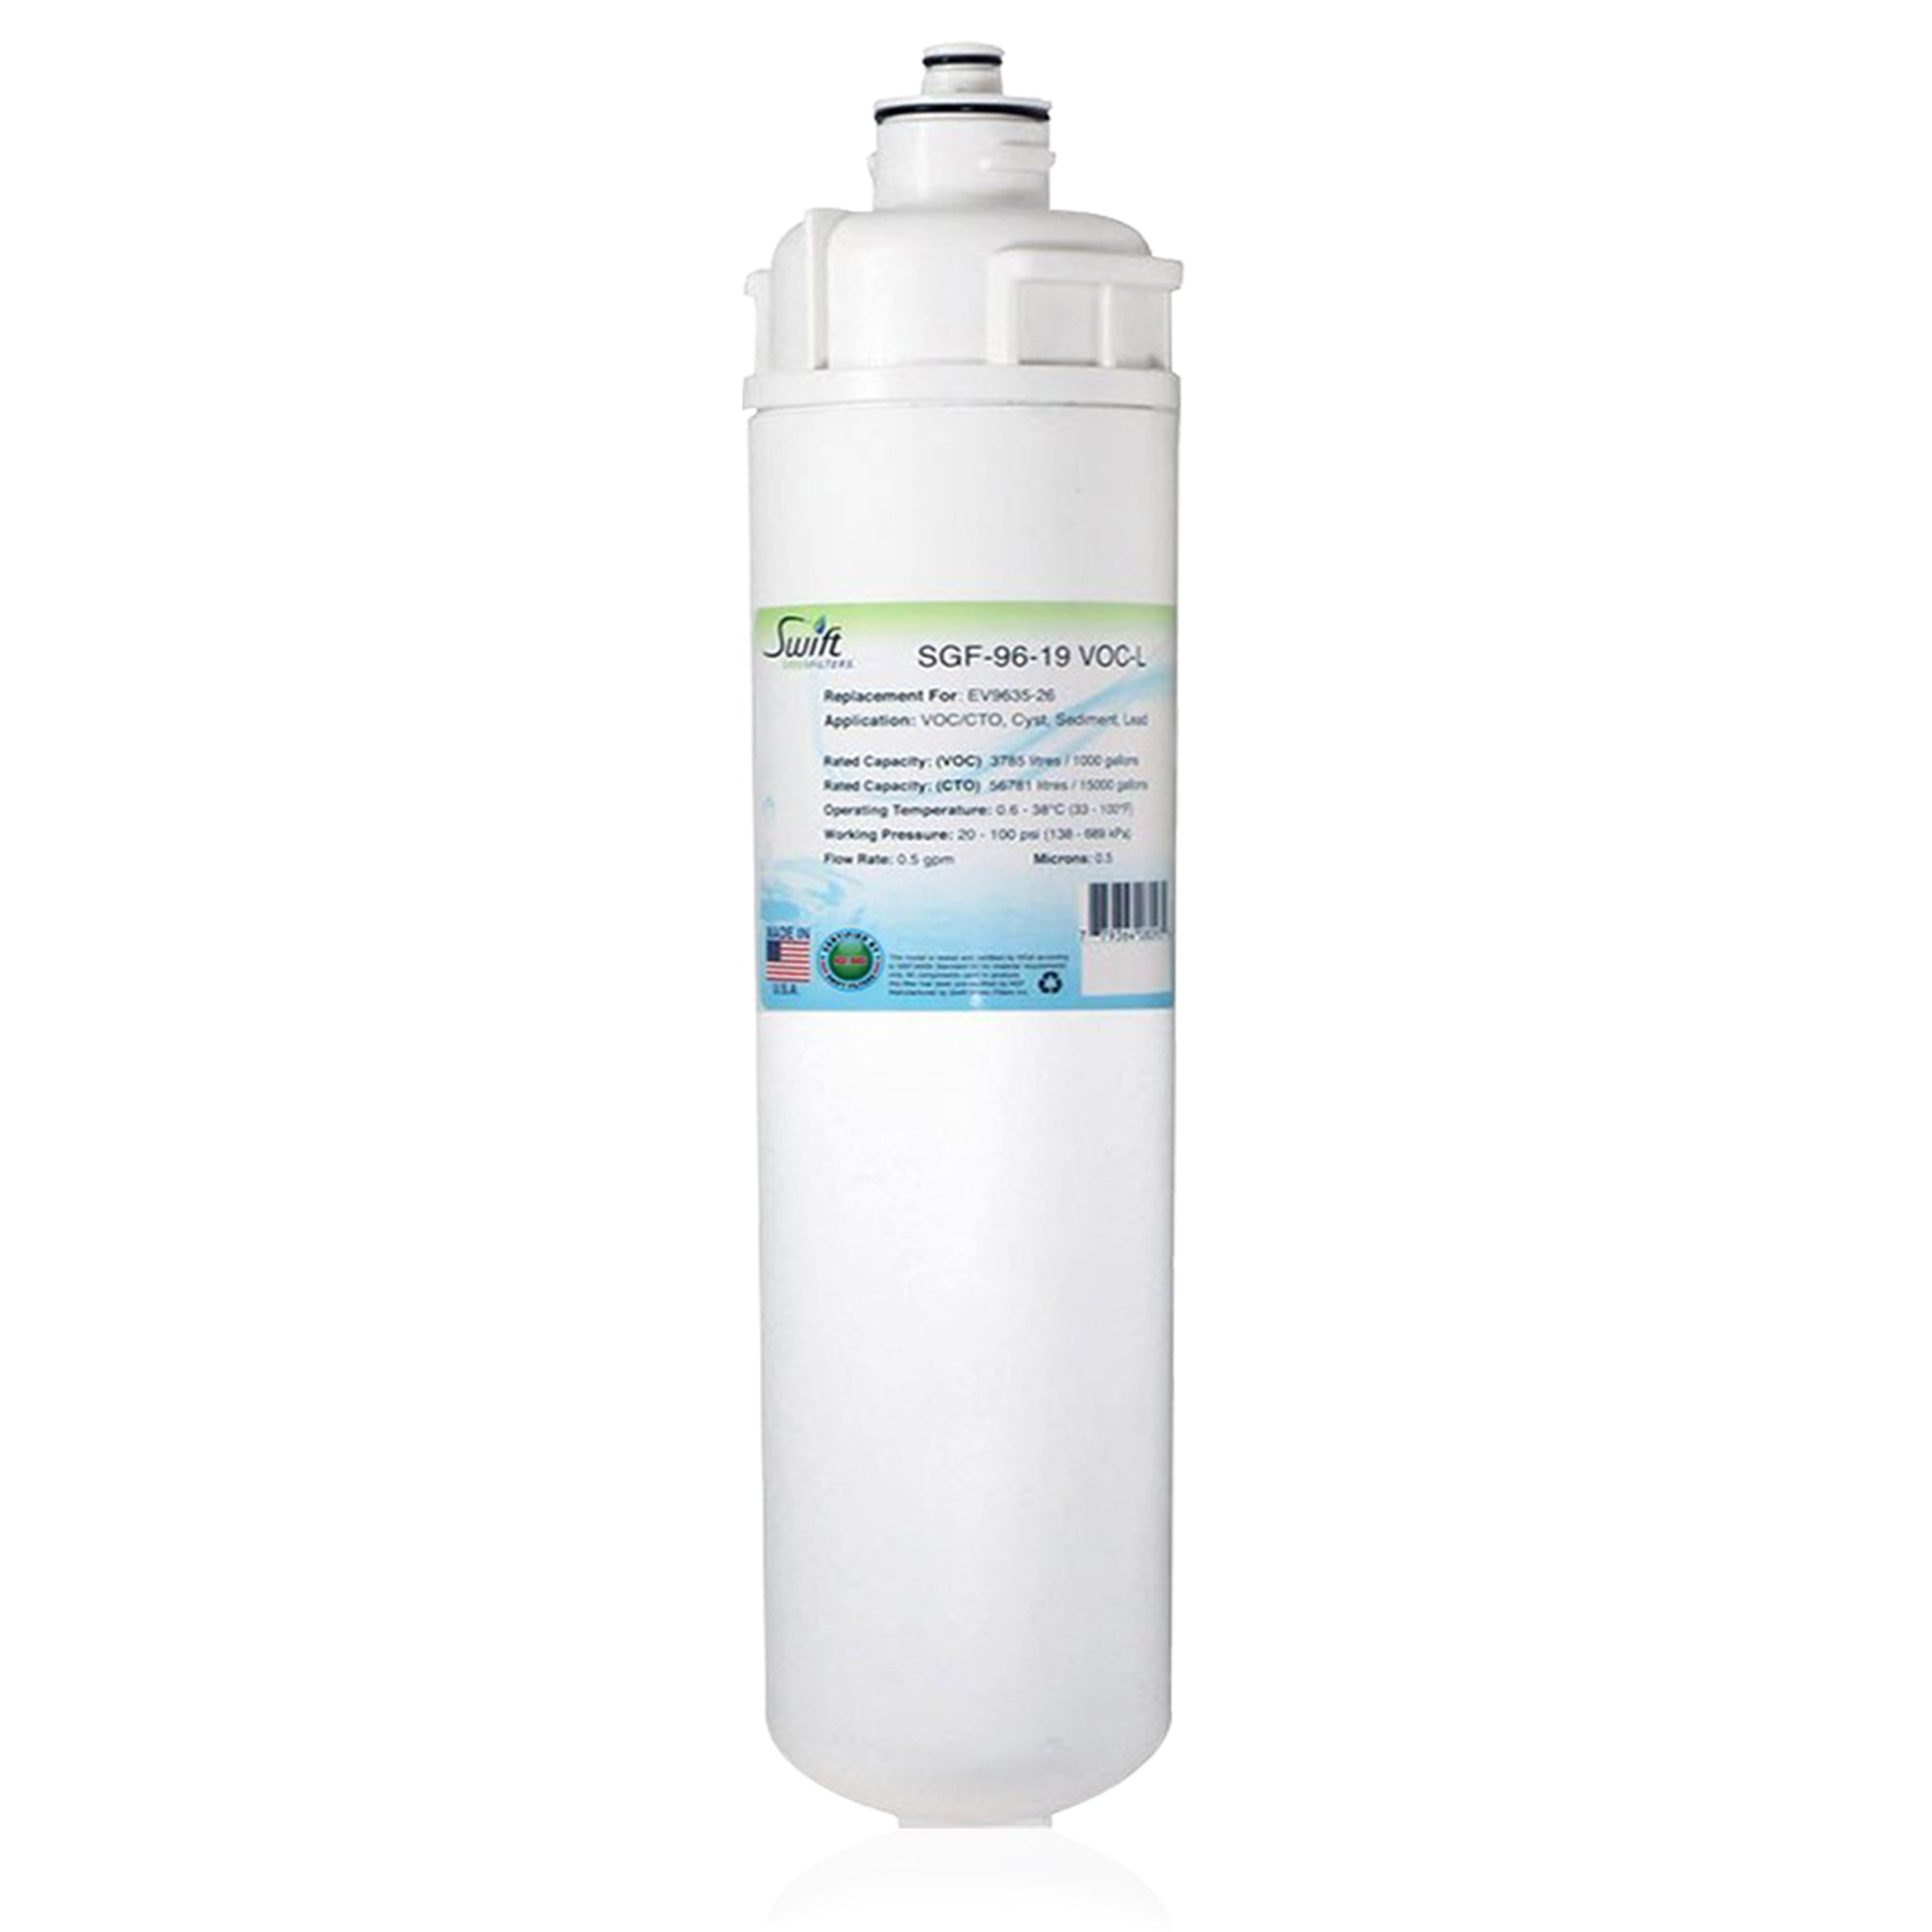 Replacement for Everpure EV9635-26,EP25,EP15 Filter by Swift Green Filters SGF-96-19 VOC-L